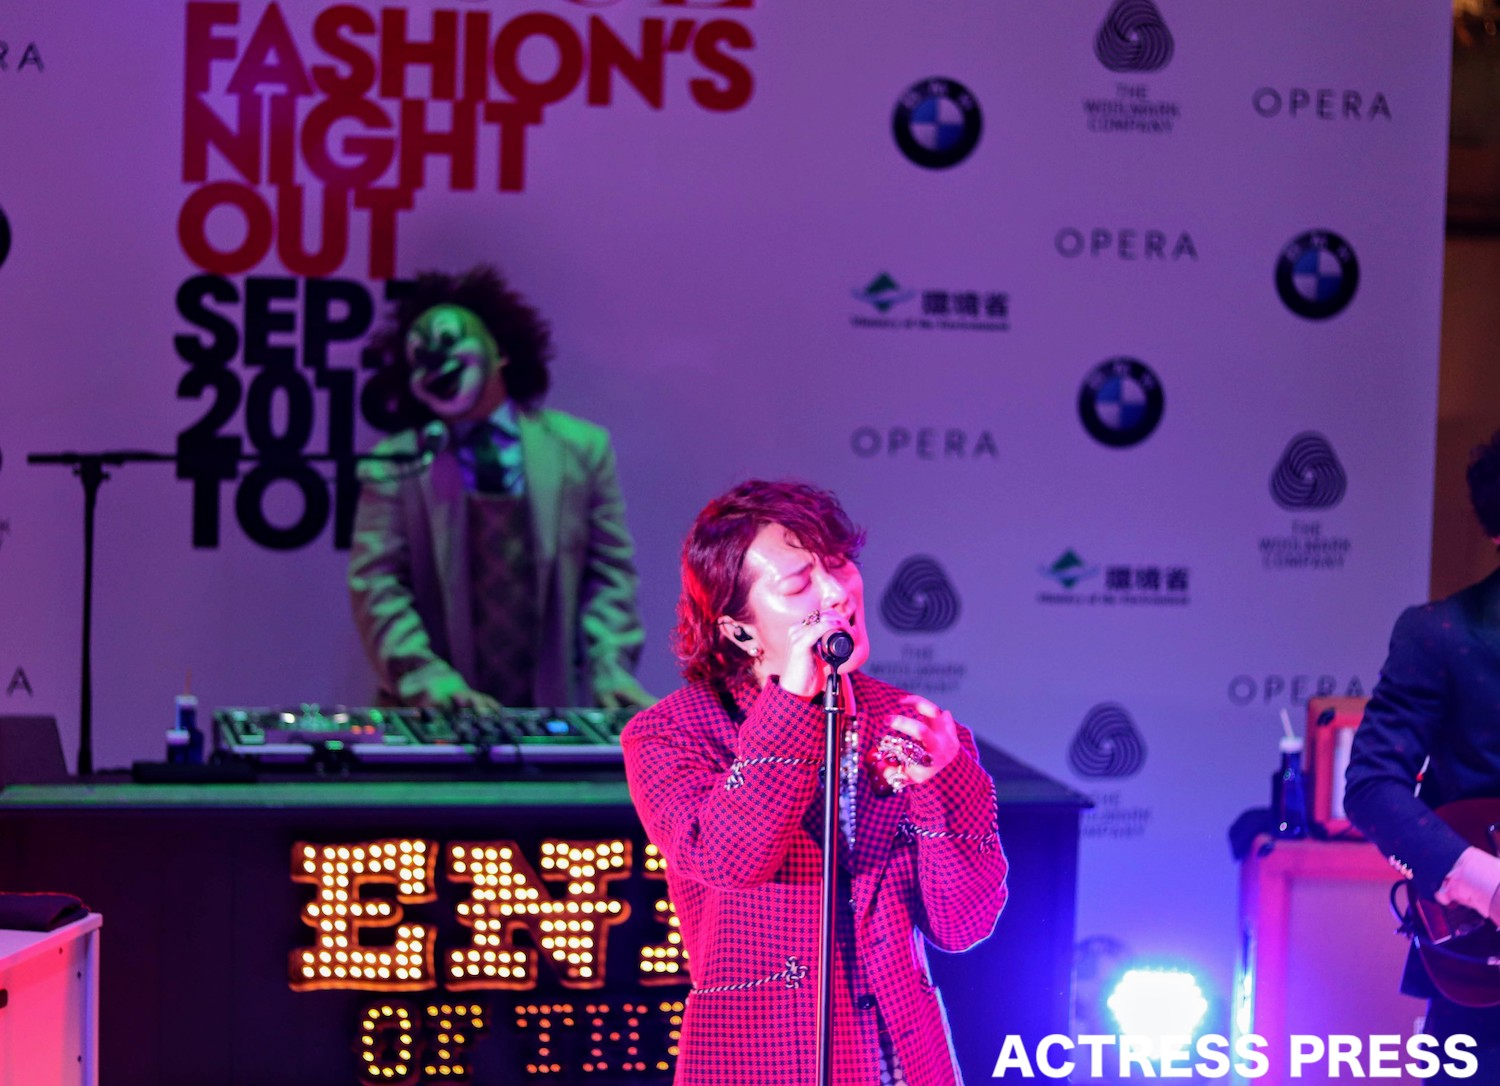 SEKAI NO OWARI/「VOGUE FASHION'S NIGHT OUT 2019」セレモニーにて(撮影:ACTRESS PRESS編集部)